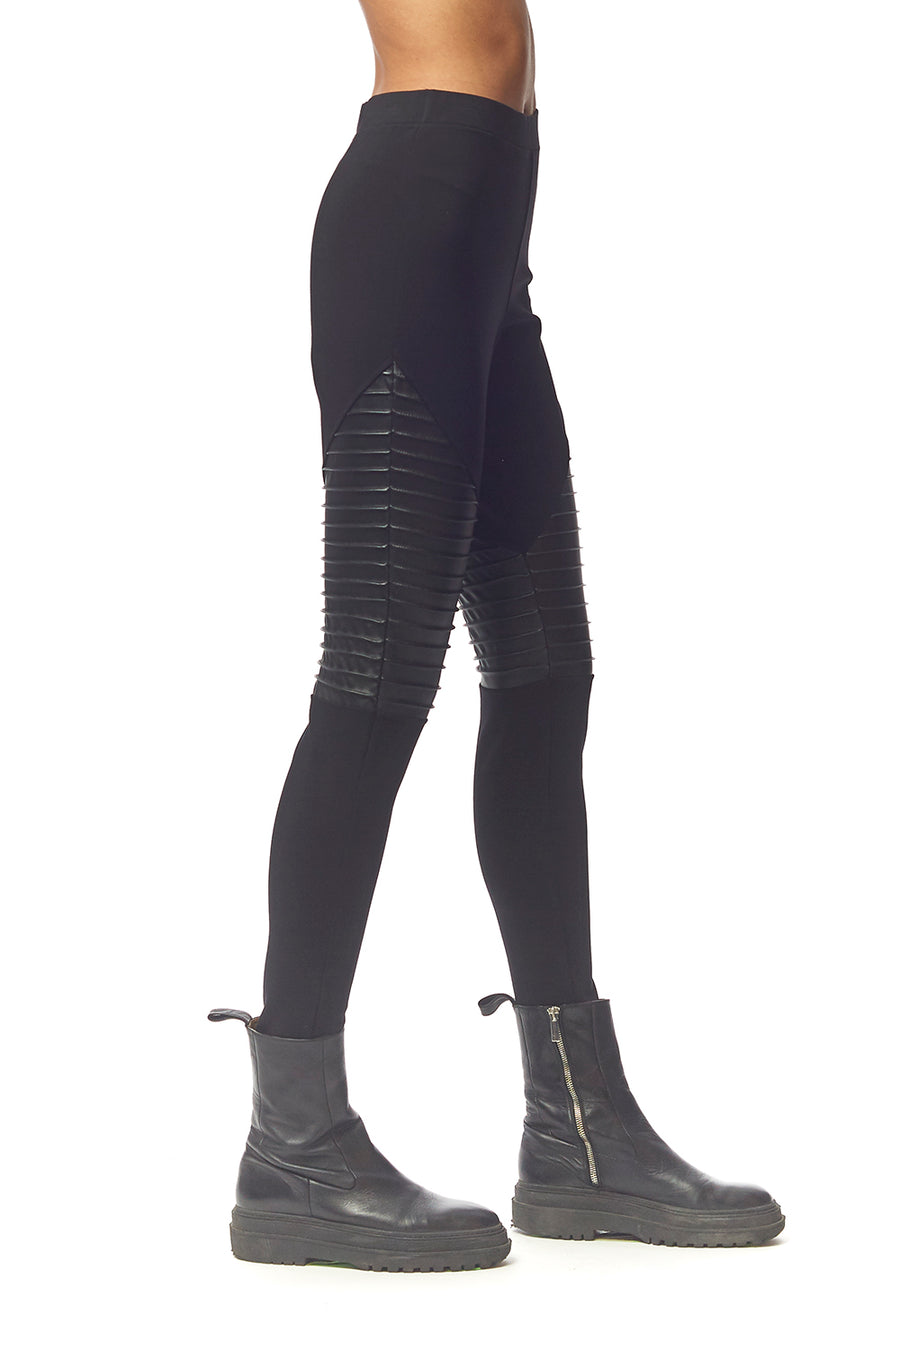 Nicola Ninja Leggings